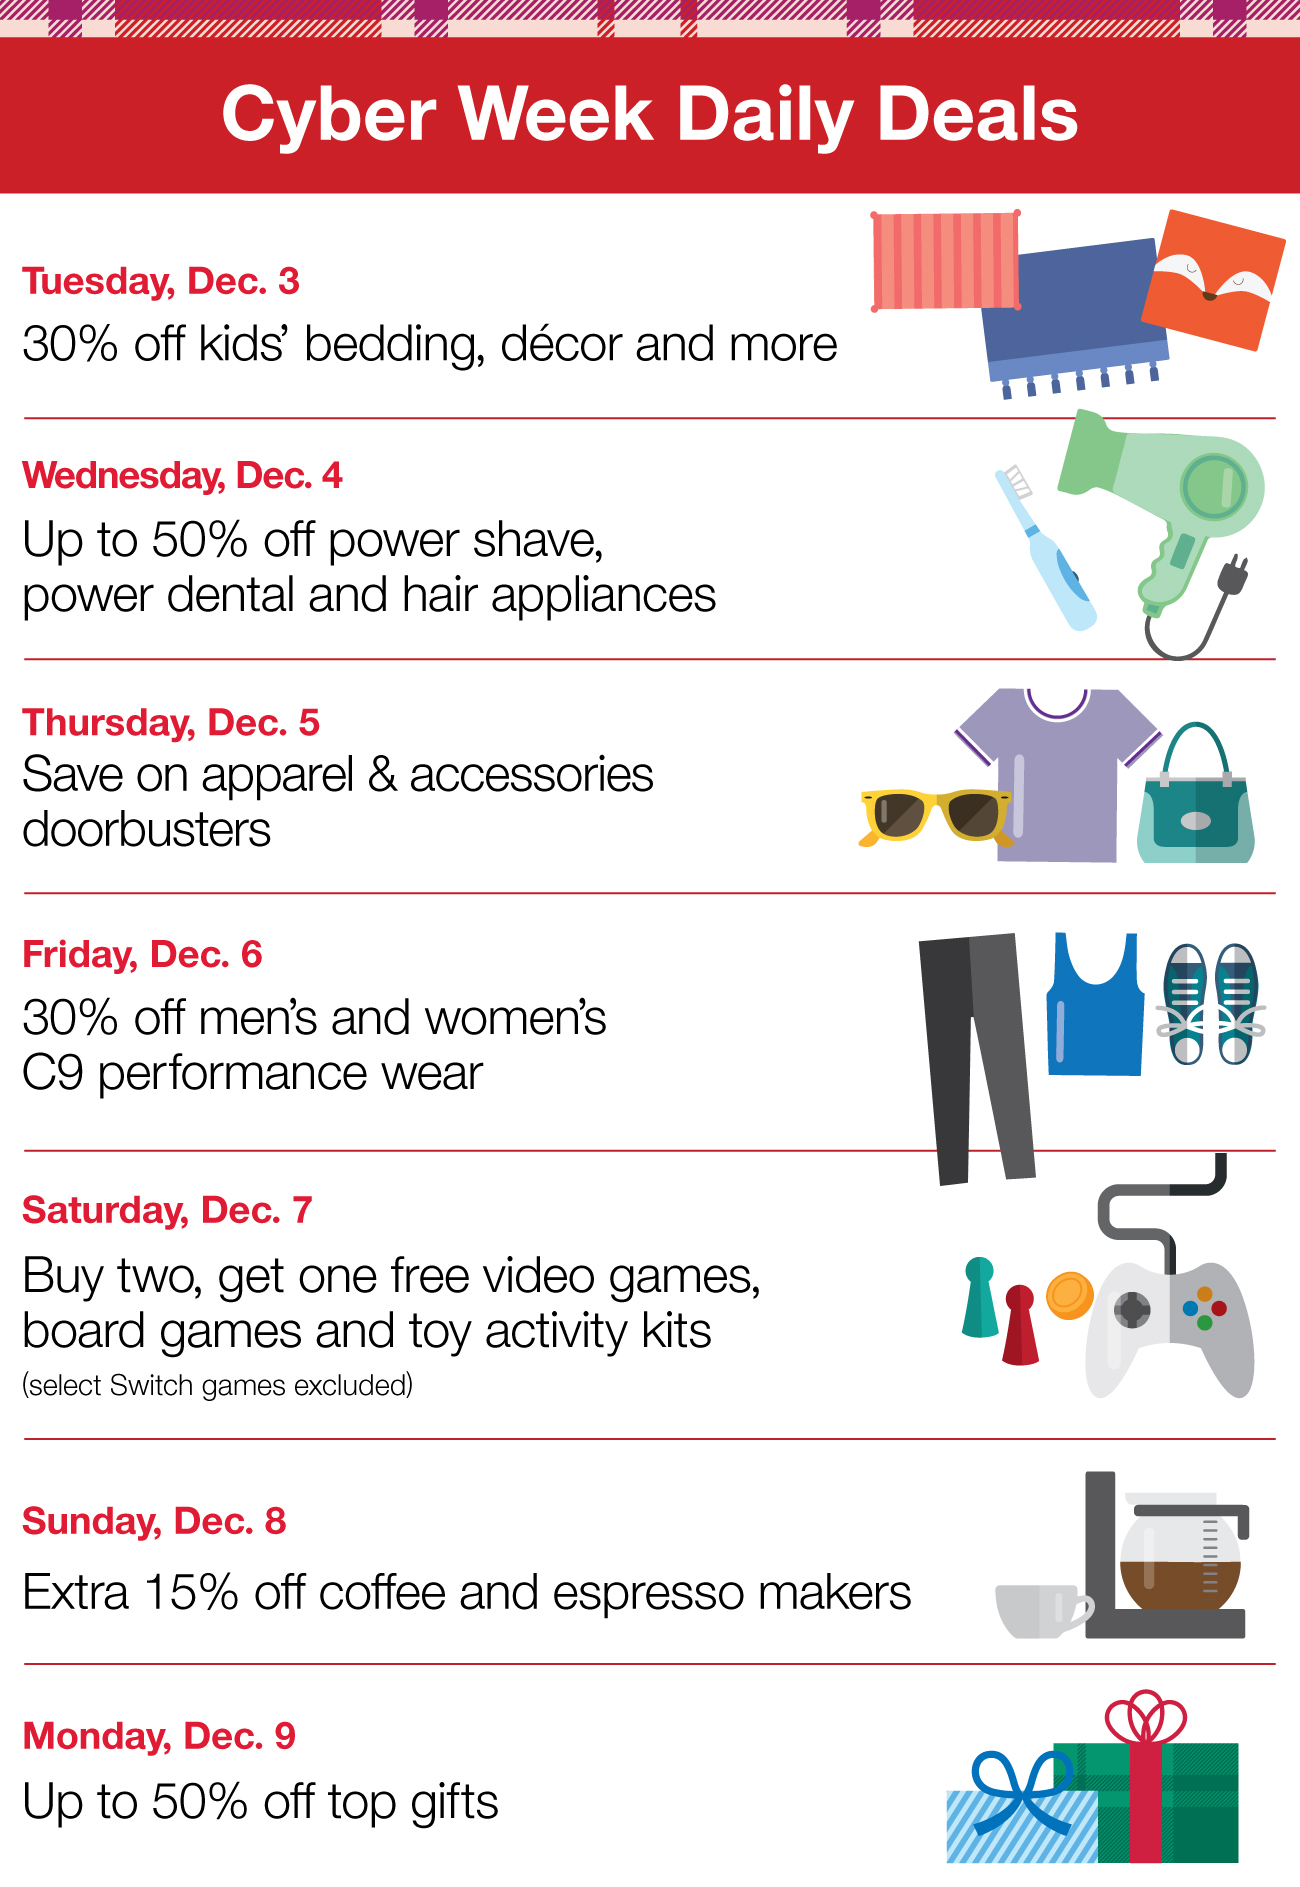 An infographic with a red plaid border and illustrations describing Target's Cyber Week Daily Deals